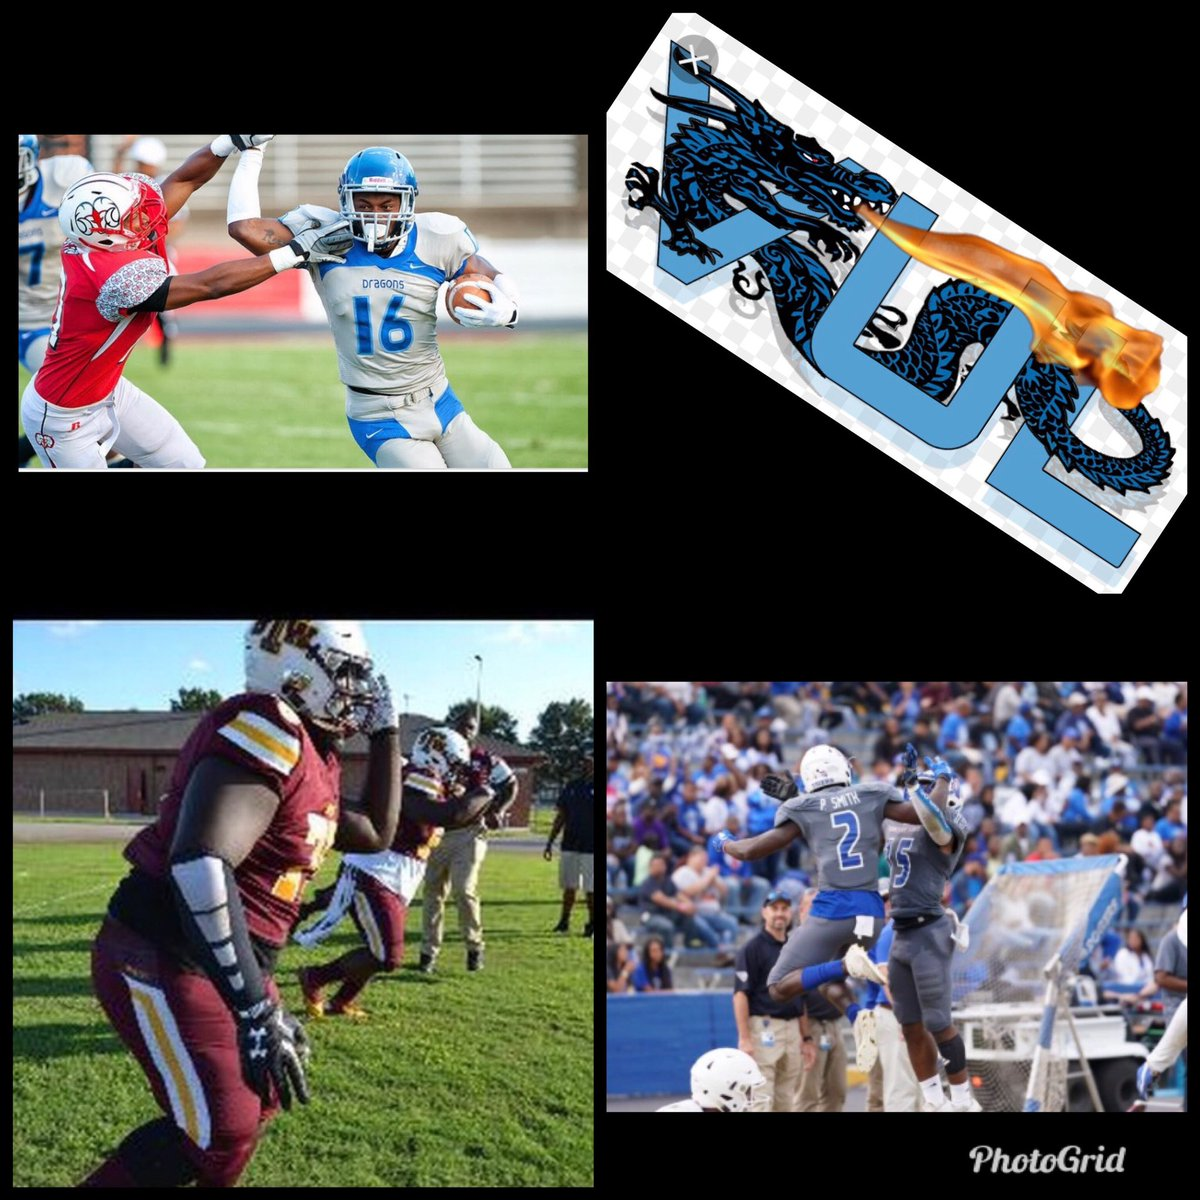 Blessed to receive my 4th offer from Virginia University of Lynchburg #WeWantGrowth  @BobbyRome  @Coach_TMatthews<br>http://pic.twitter.com/kjqpr14uOe